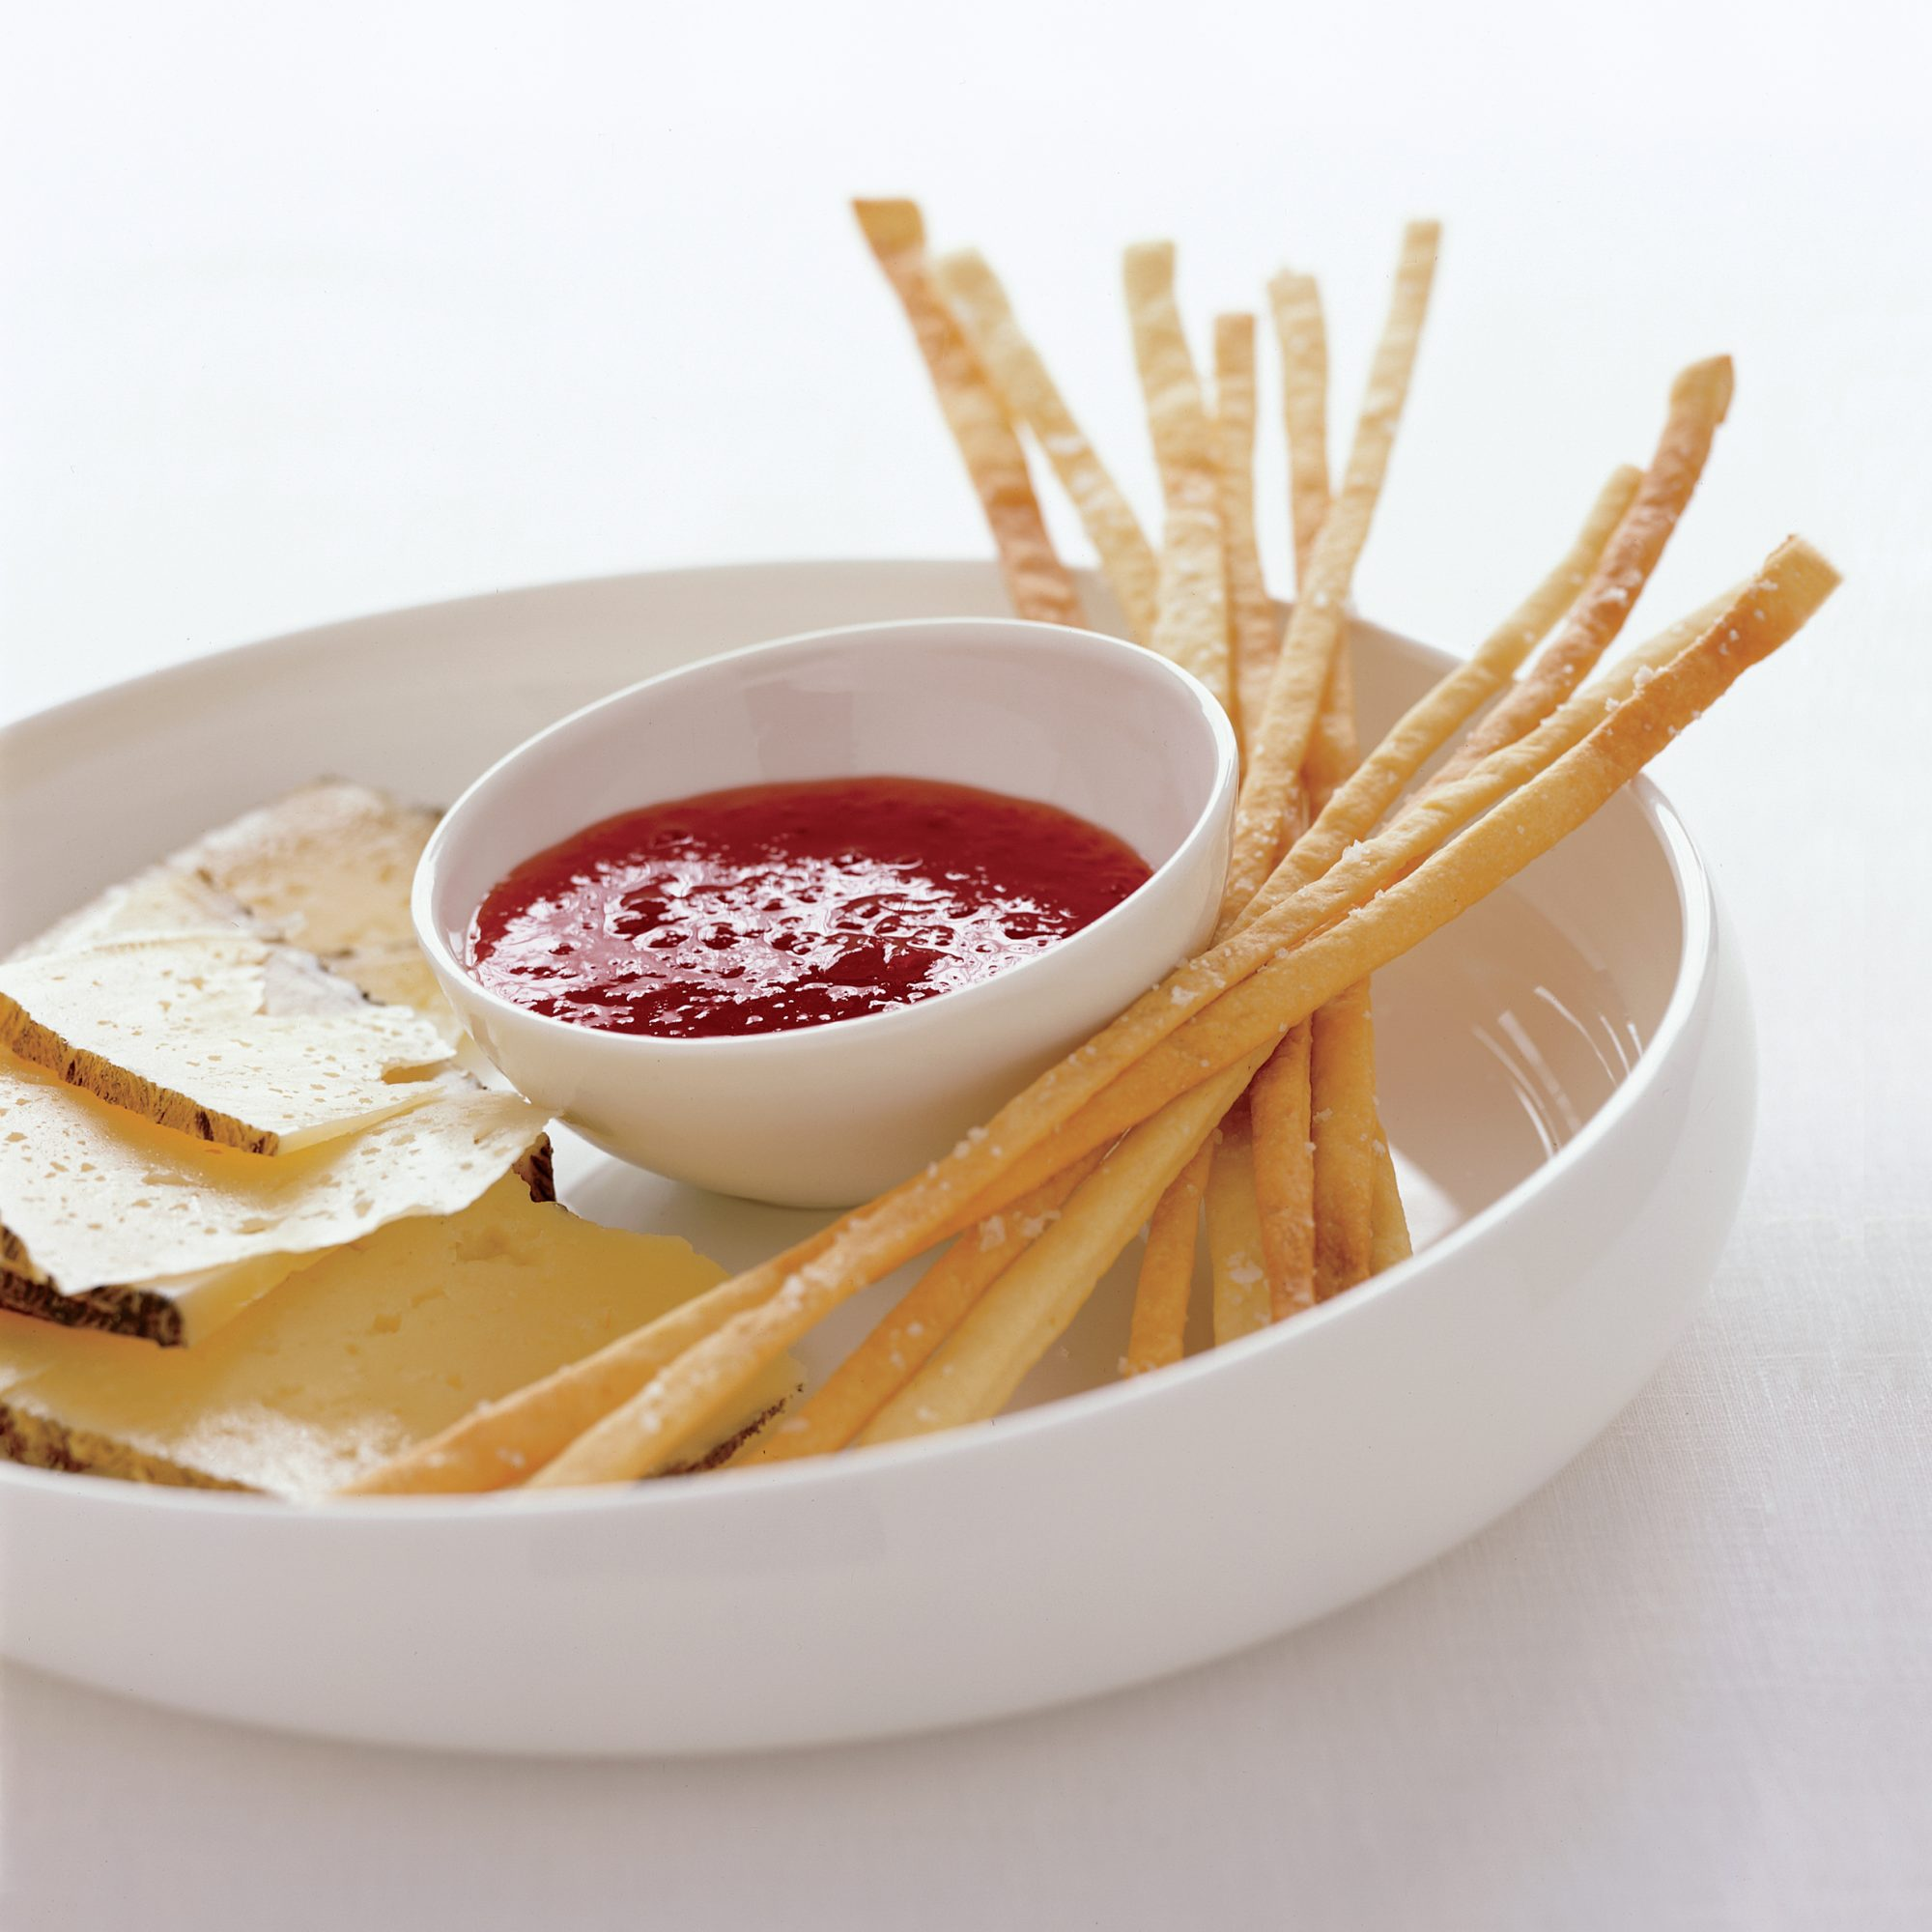 Red-Pepper Jelly with Grissini and Montasio Cheese